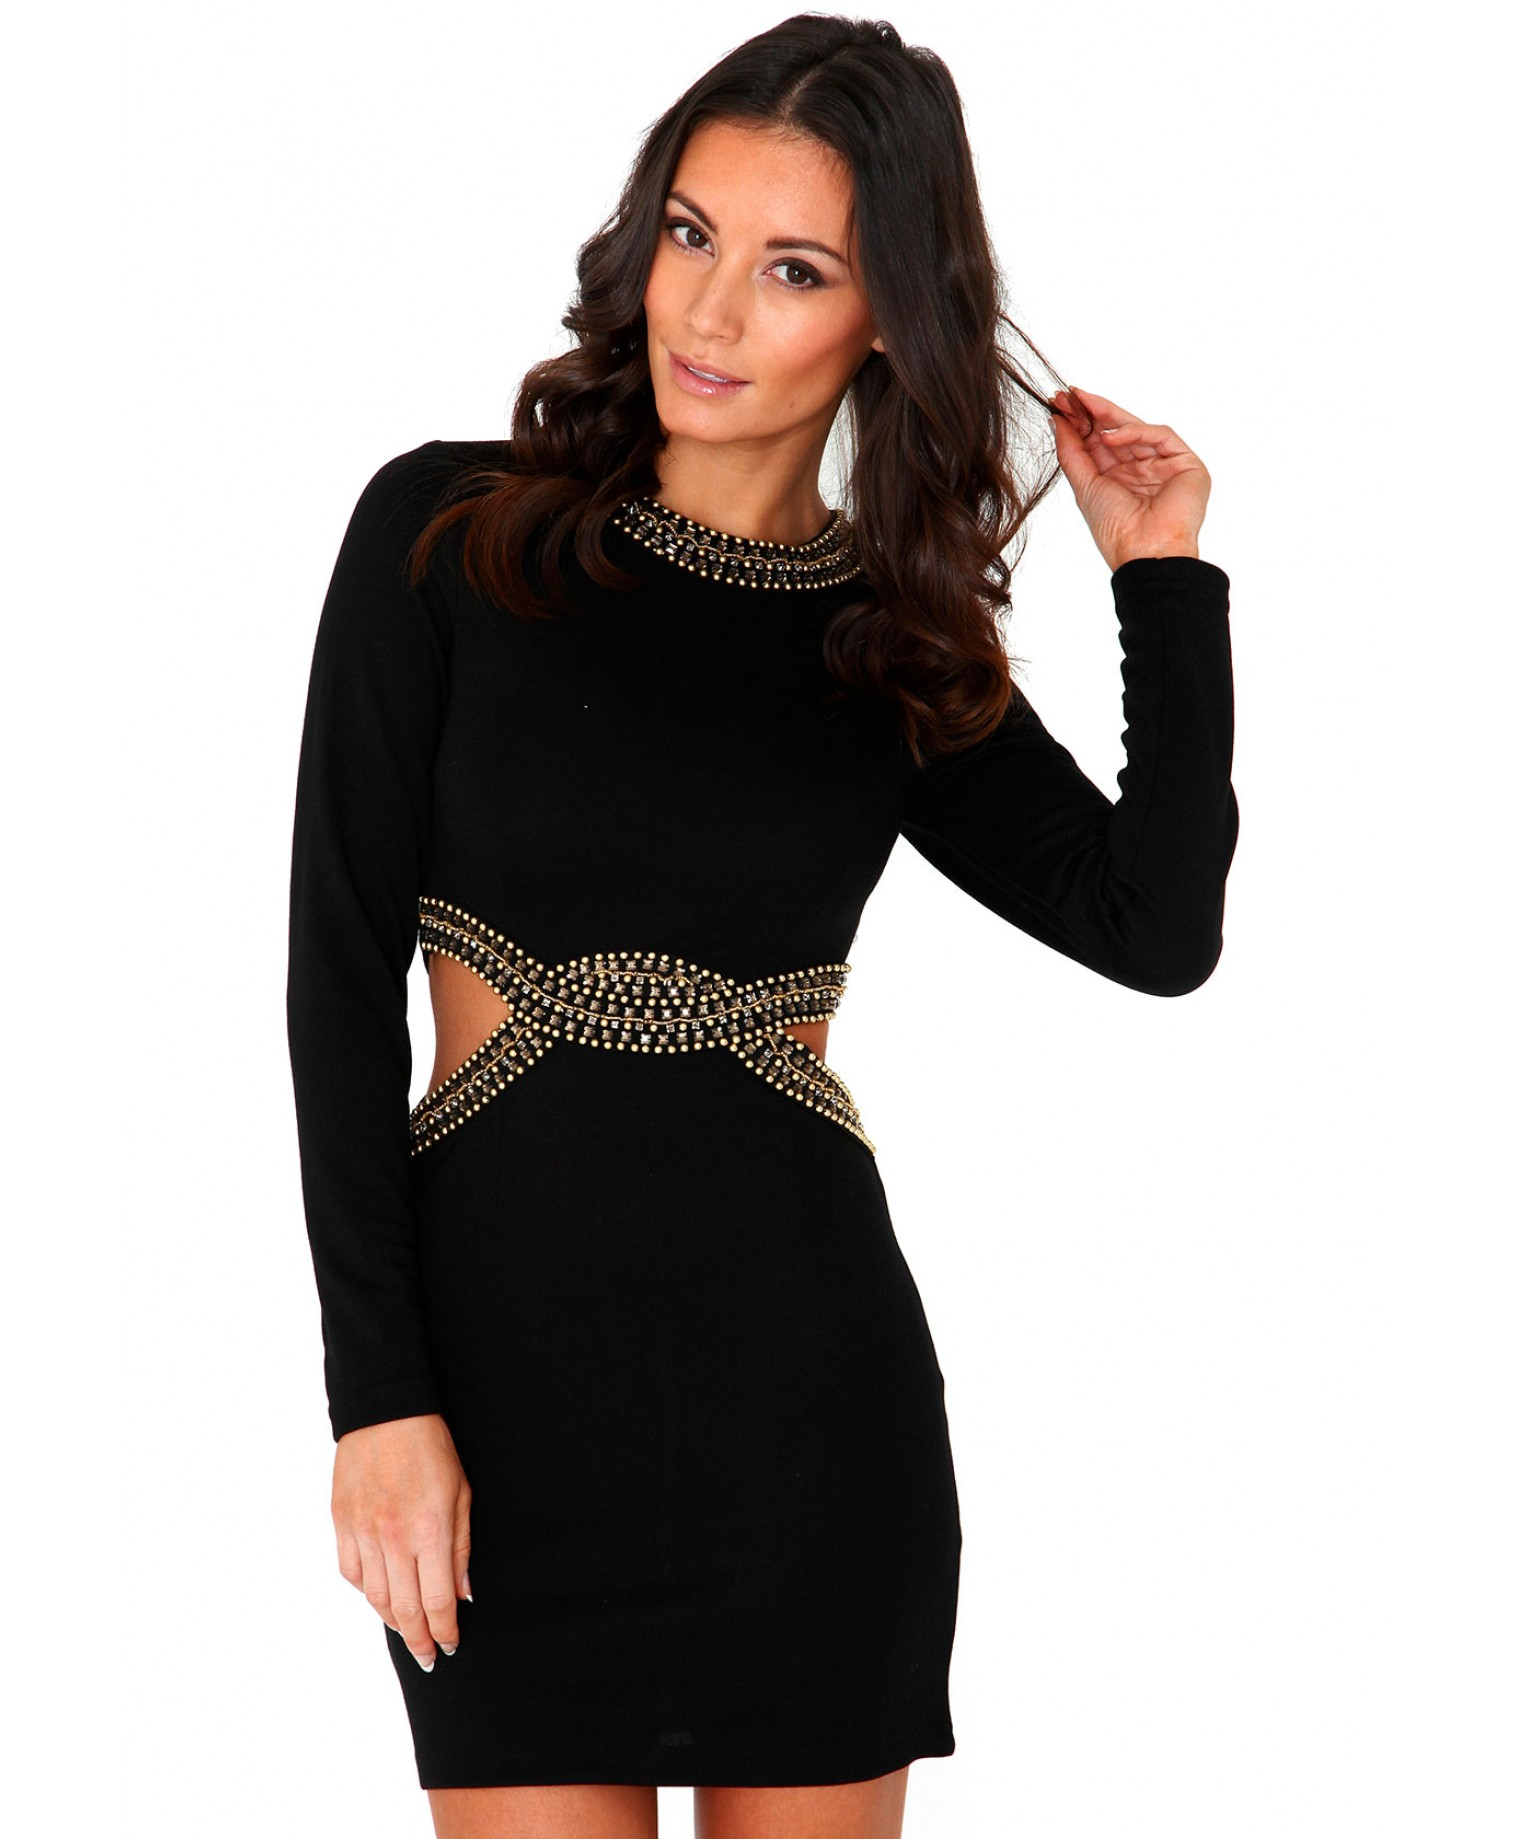 Sleeve Long cut out dress advise to wear for autumn in 2019